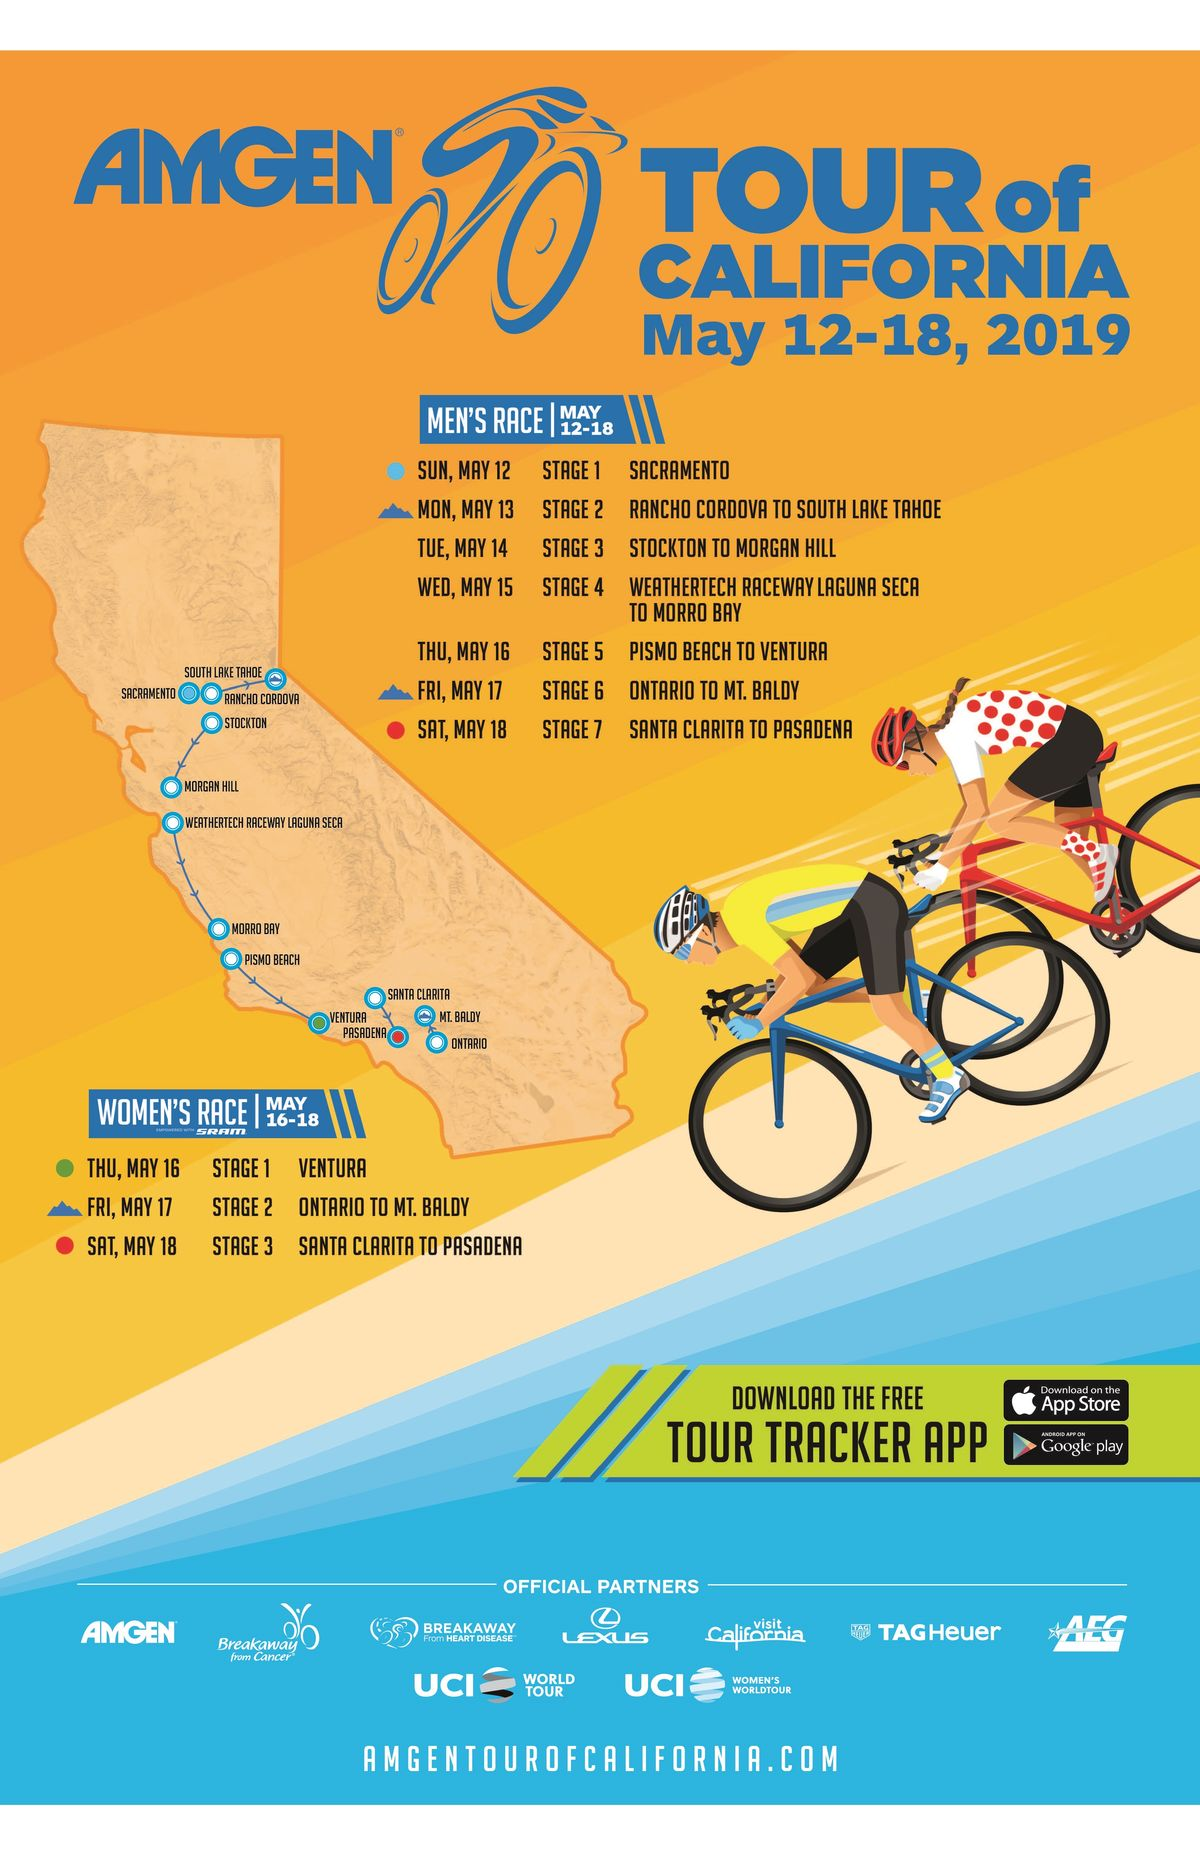 Amgen Tour of California, California's largest sporting event, will travel from Sacramento to Pasadena in May 2019. (Graphic: Bu